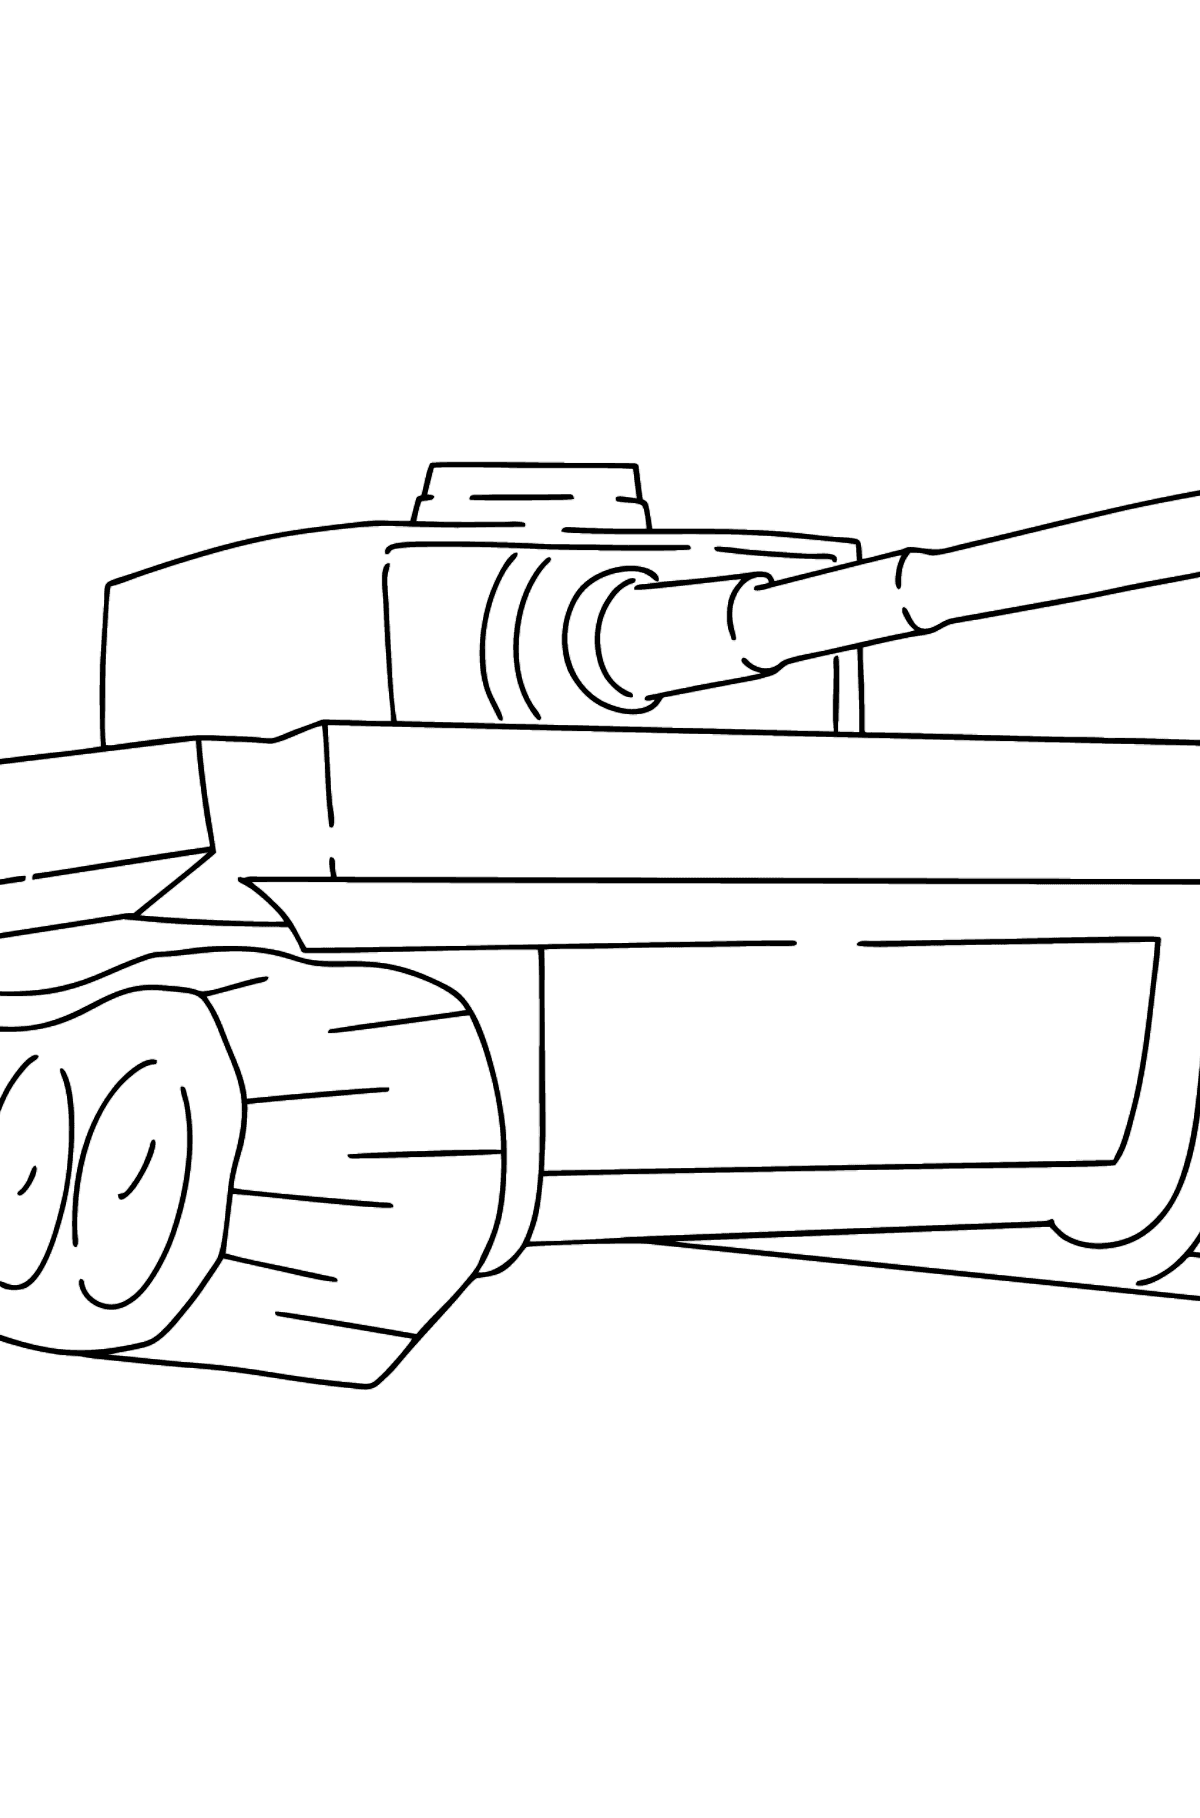 Tank Tiger coloring page - Coloring Pages for Kids